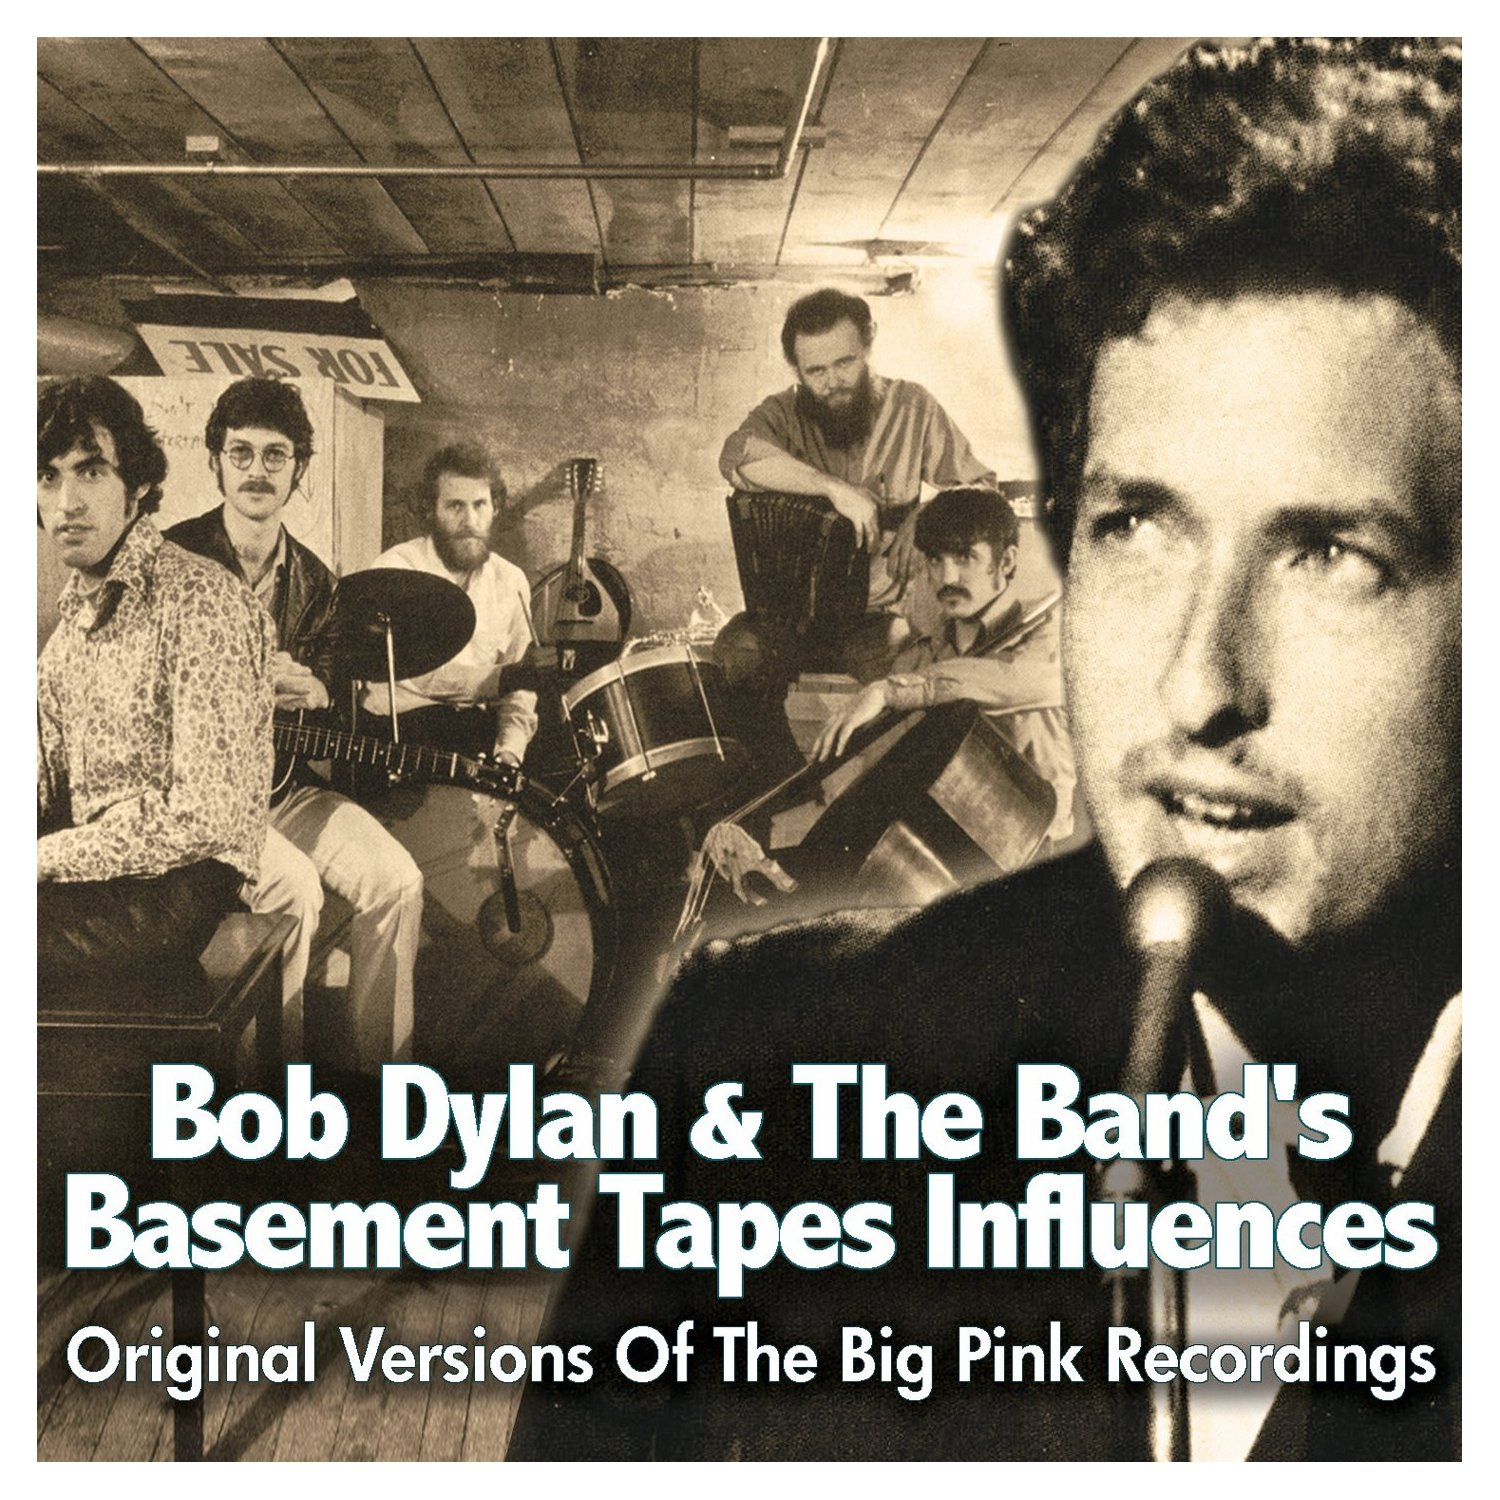 the basement tapes influences bob dylan visions of dylan